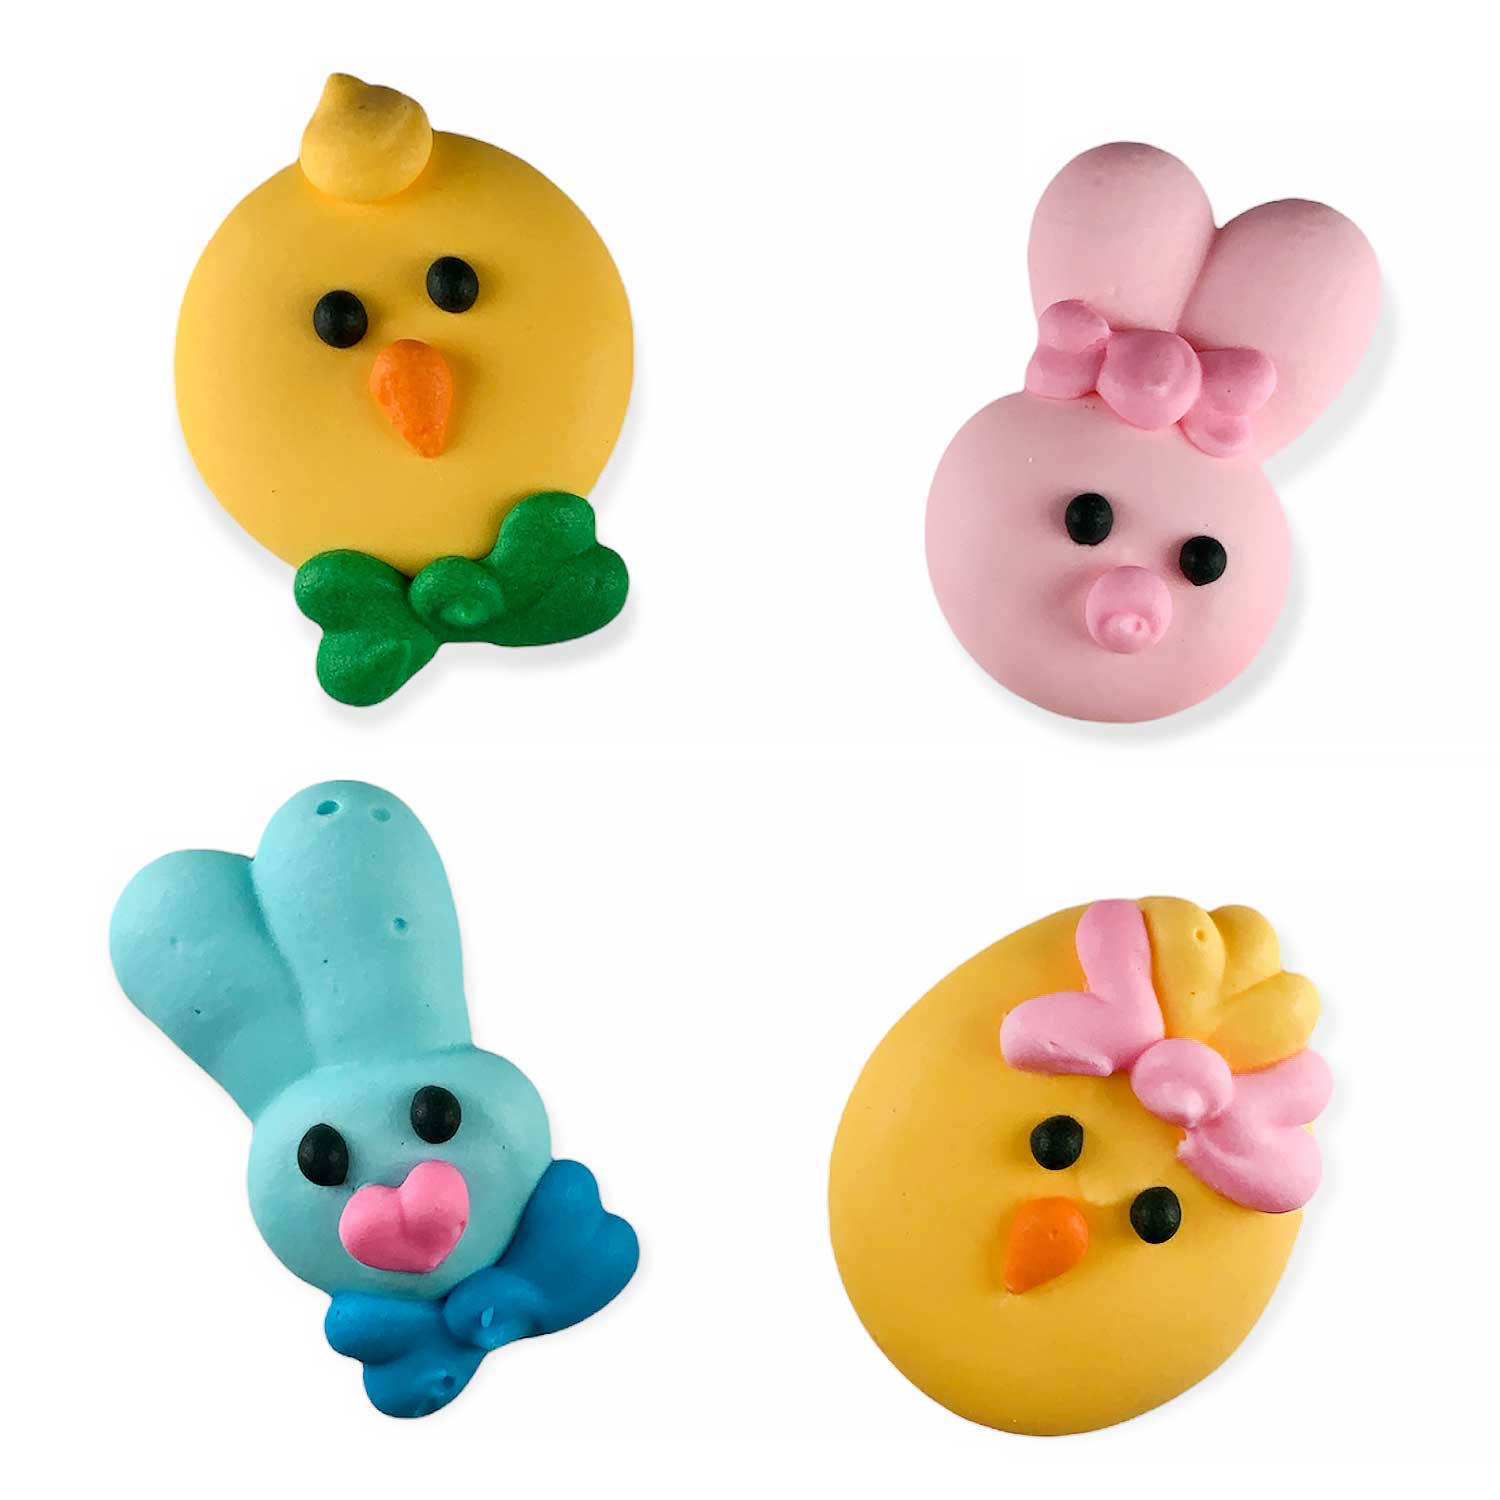 Icing Layons - Bunny & Chick Assortment